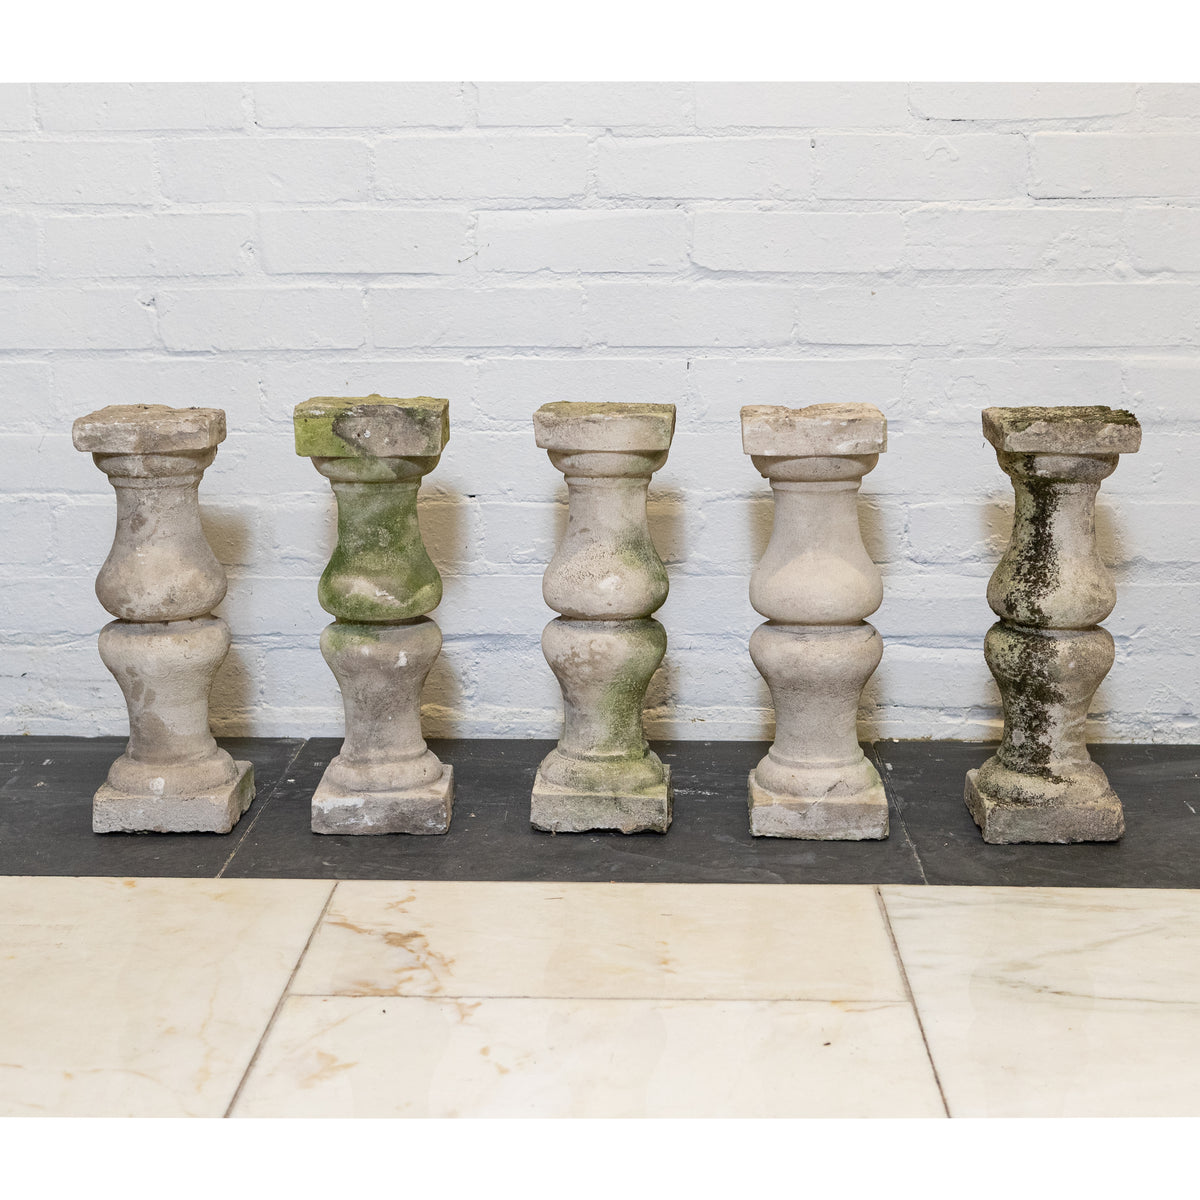 Antique Portland Stone Balustrades (set of 23) | The Architectural Forum